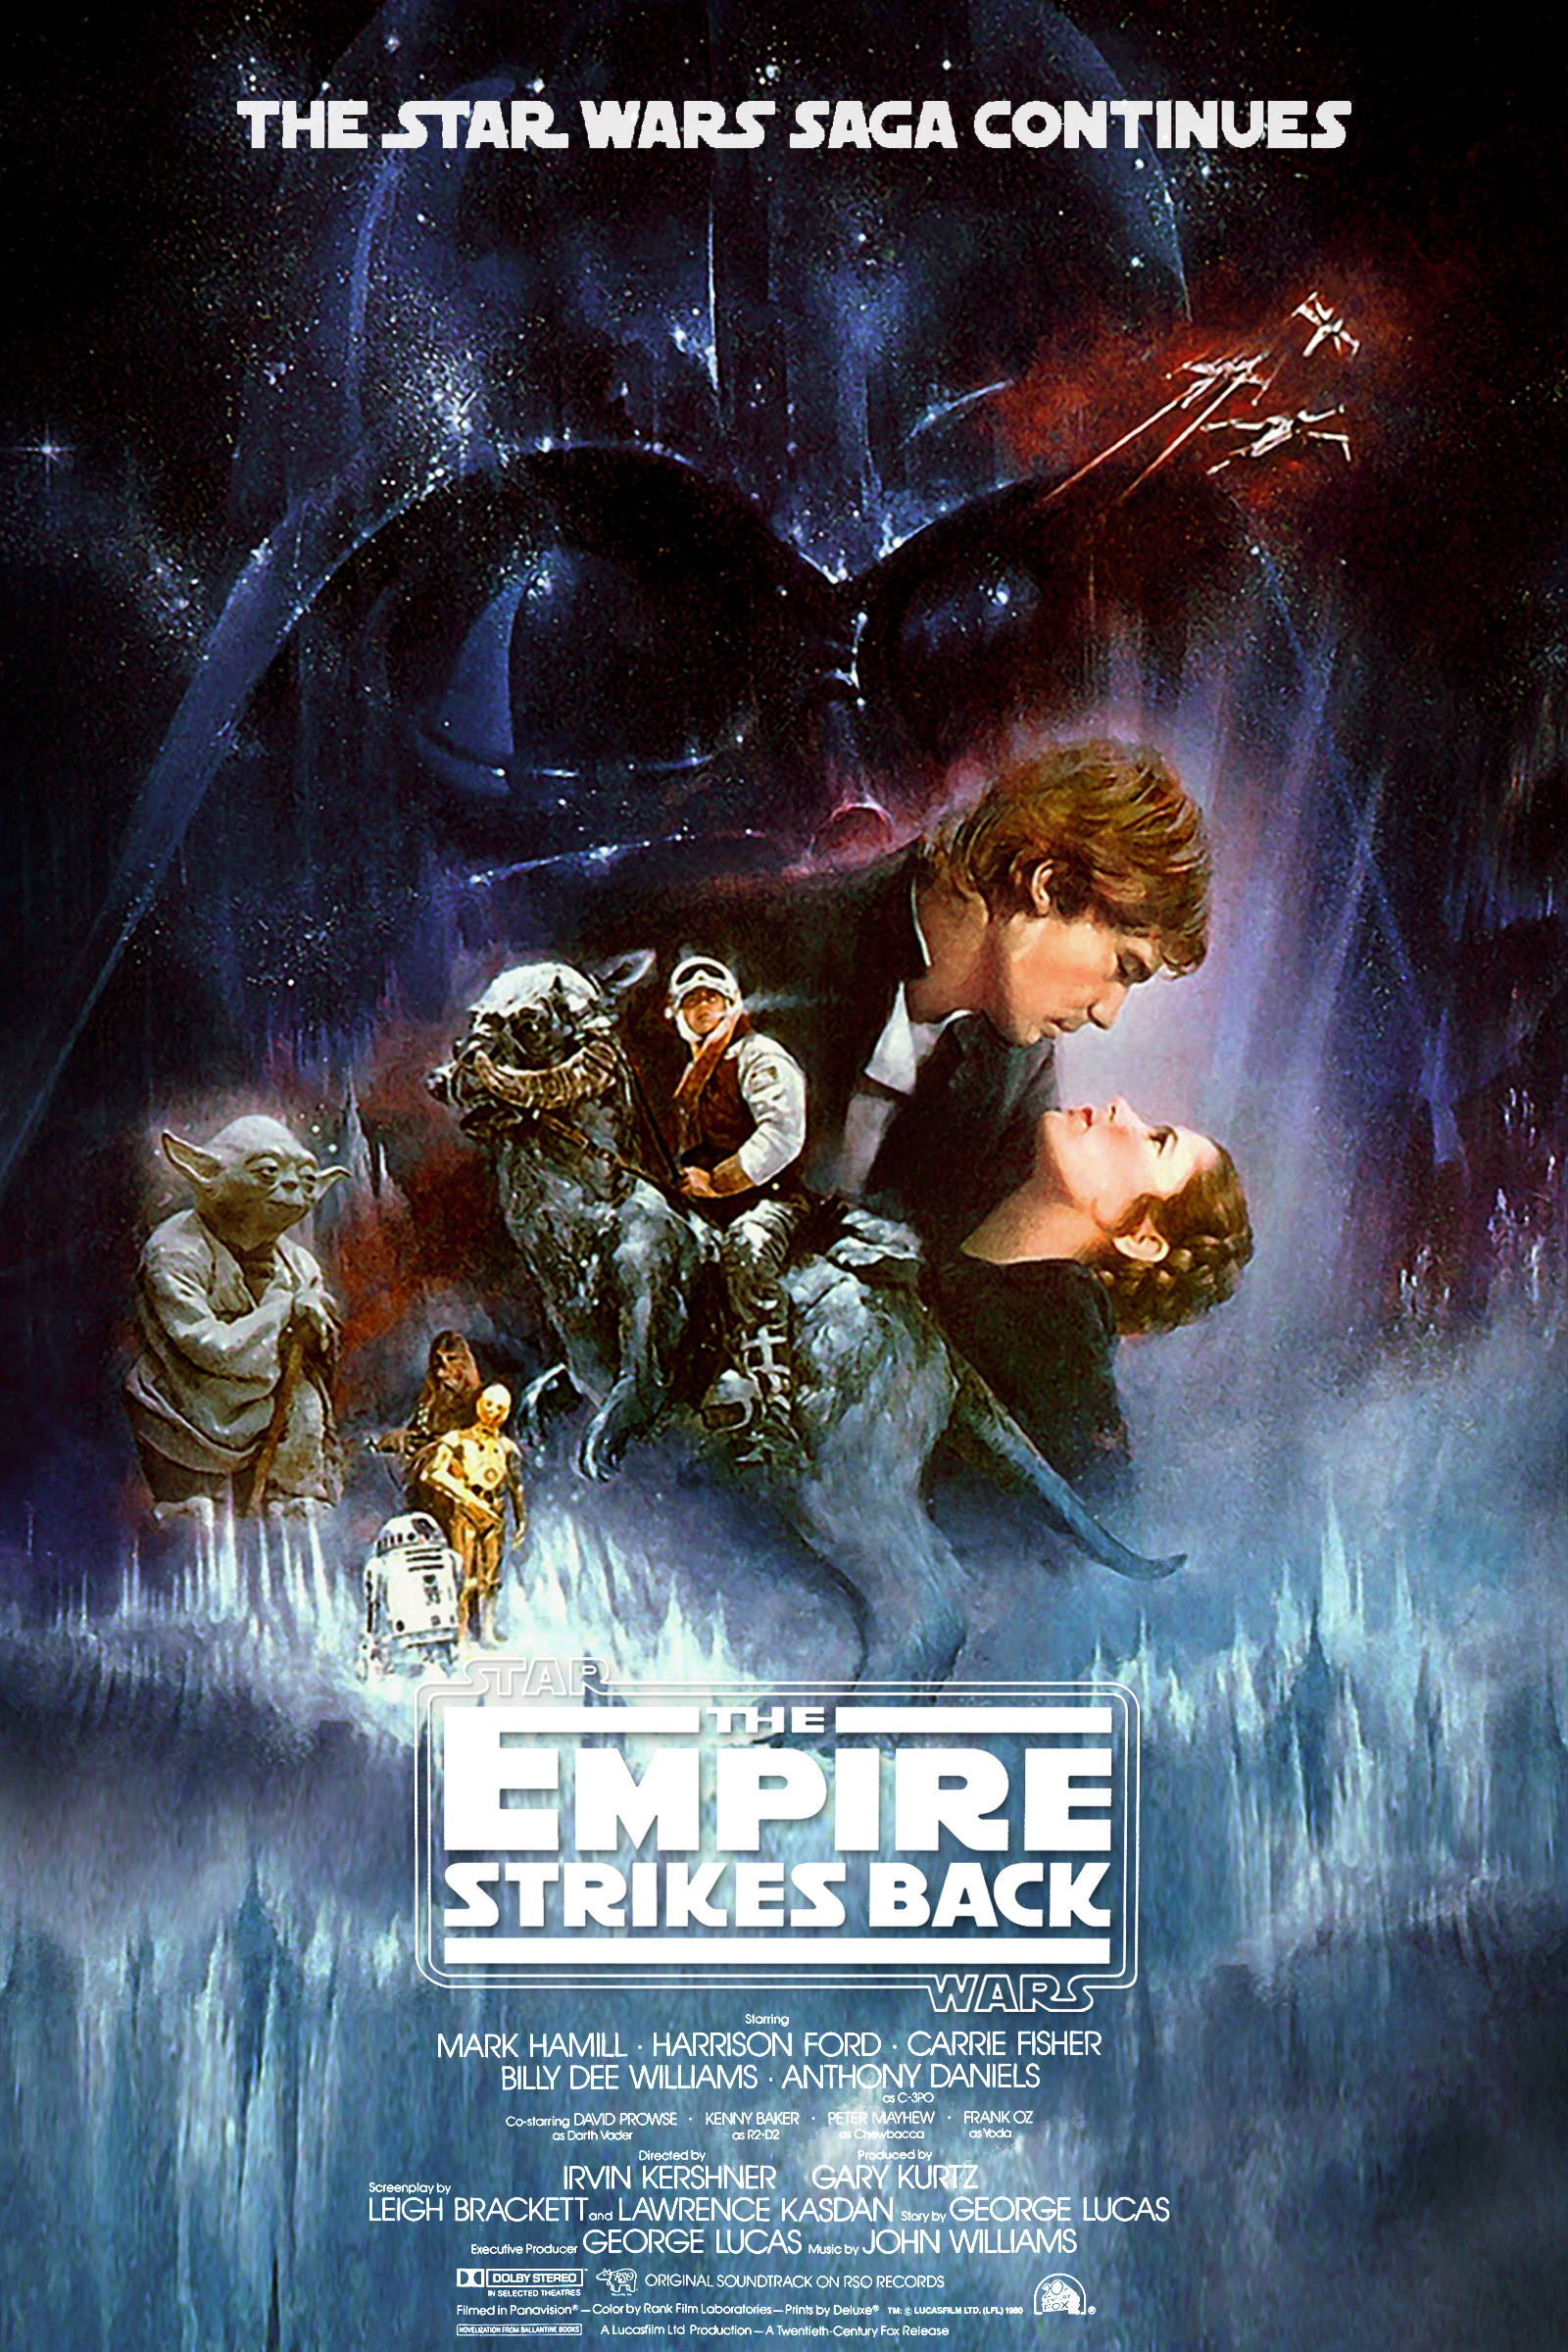 Star wars The empire strikes back #11 movie poster print